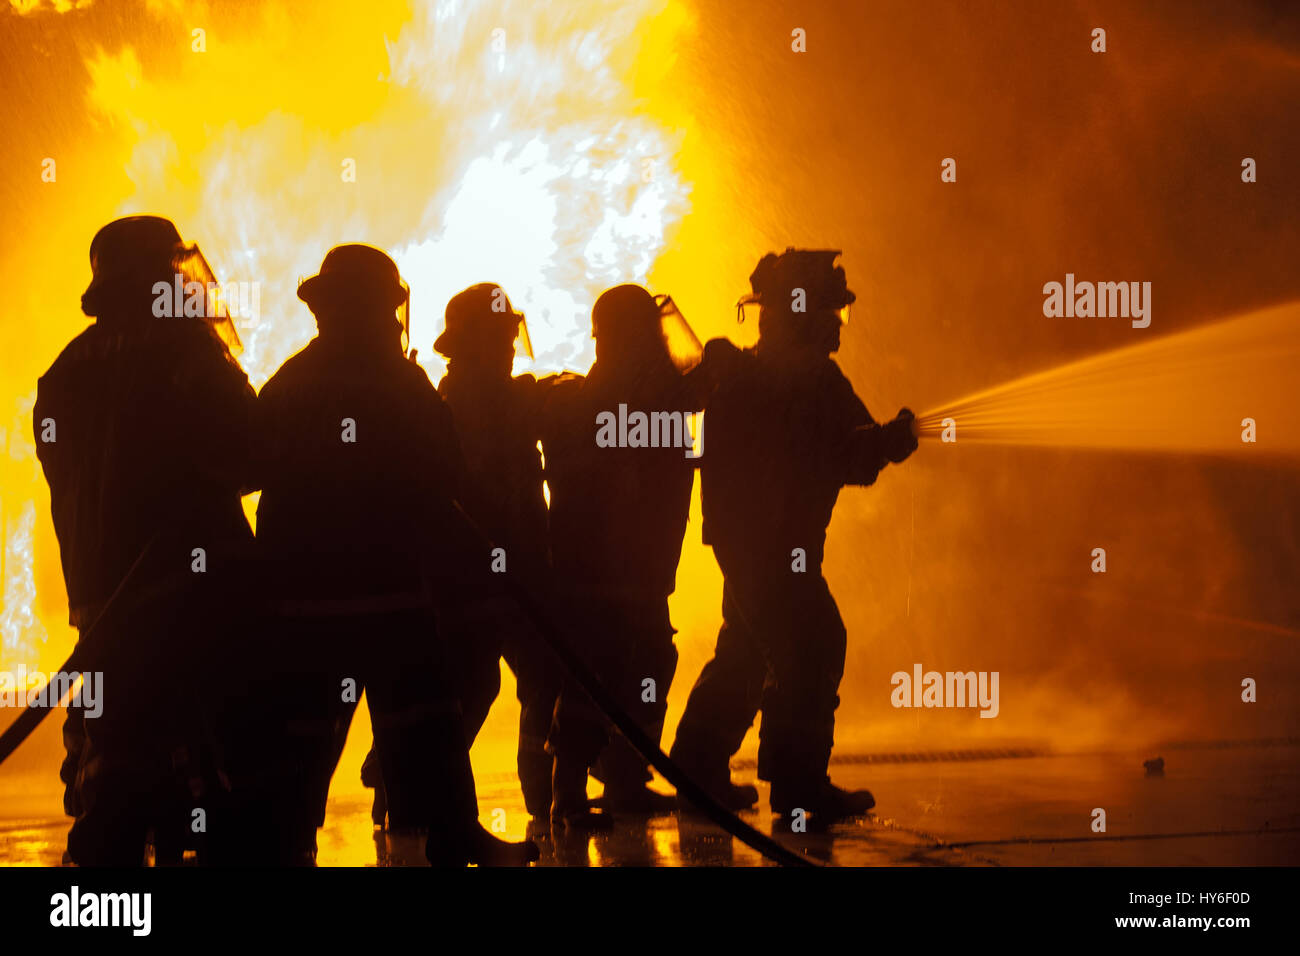 Group of firefighters controlling hose spraying water during firefighting exercise Stock Photo